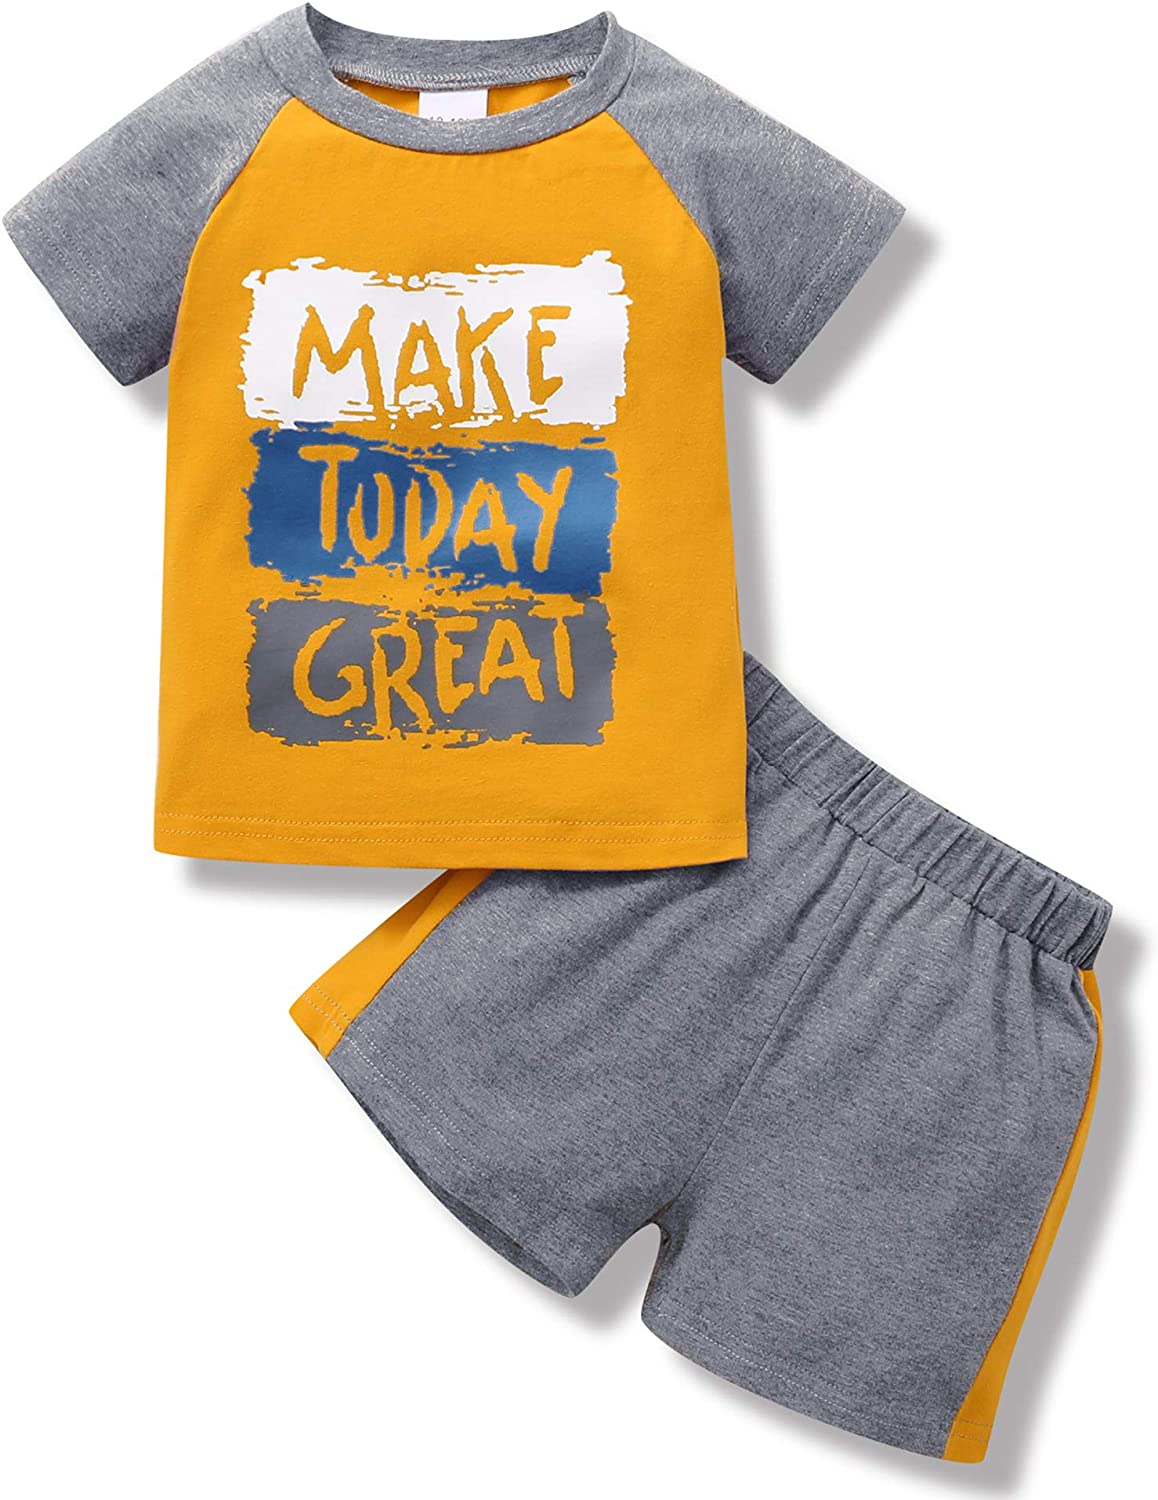 2T Baby Boy Clothes Tops Sweatshirt Pants Shorts Set Kids Baby Boy Outfits Cotton Letter Printes Baby Boy's Clothing Sweatsuit Summer Yellow 3T Boy Clothes 2PCS